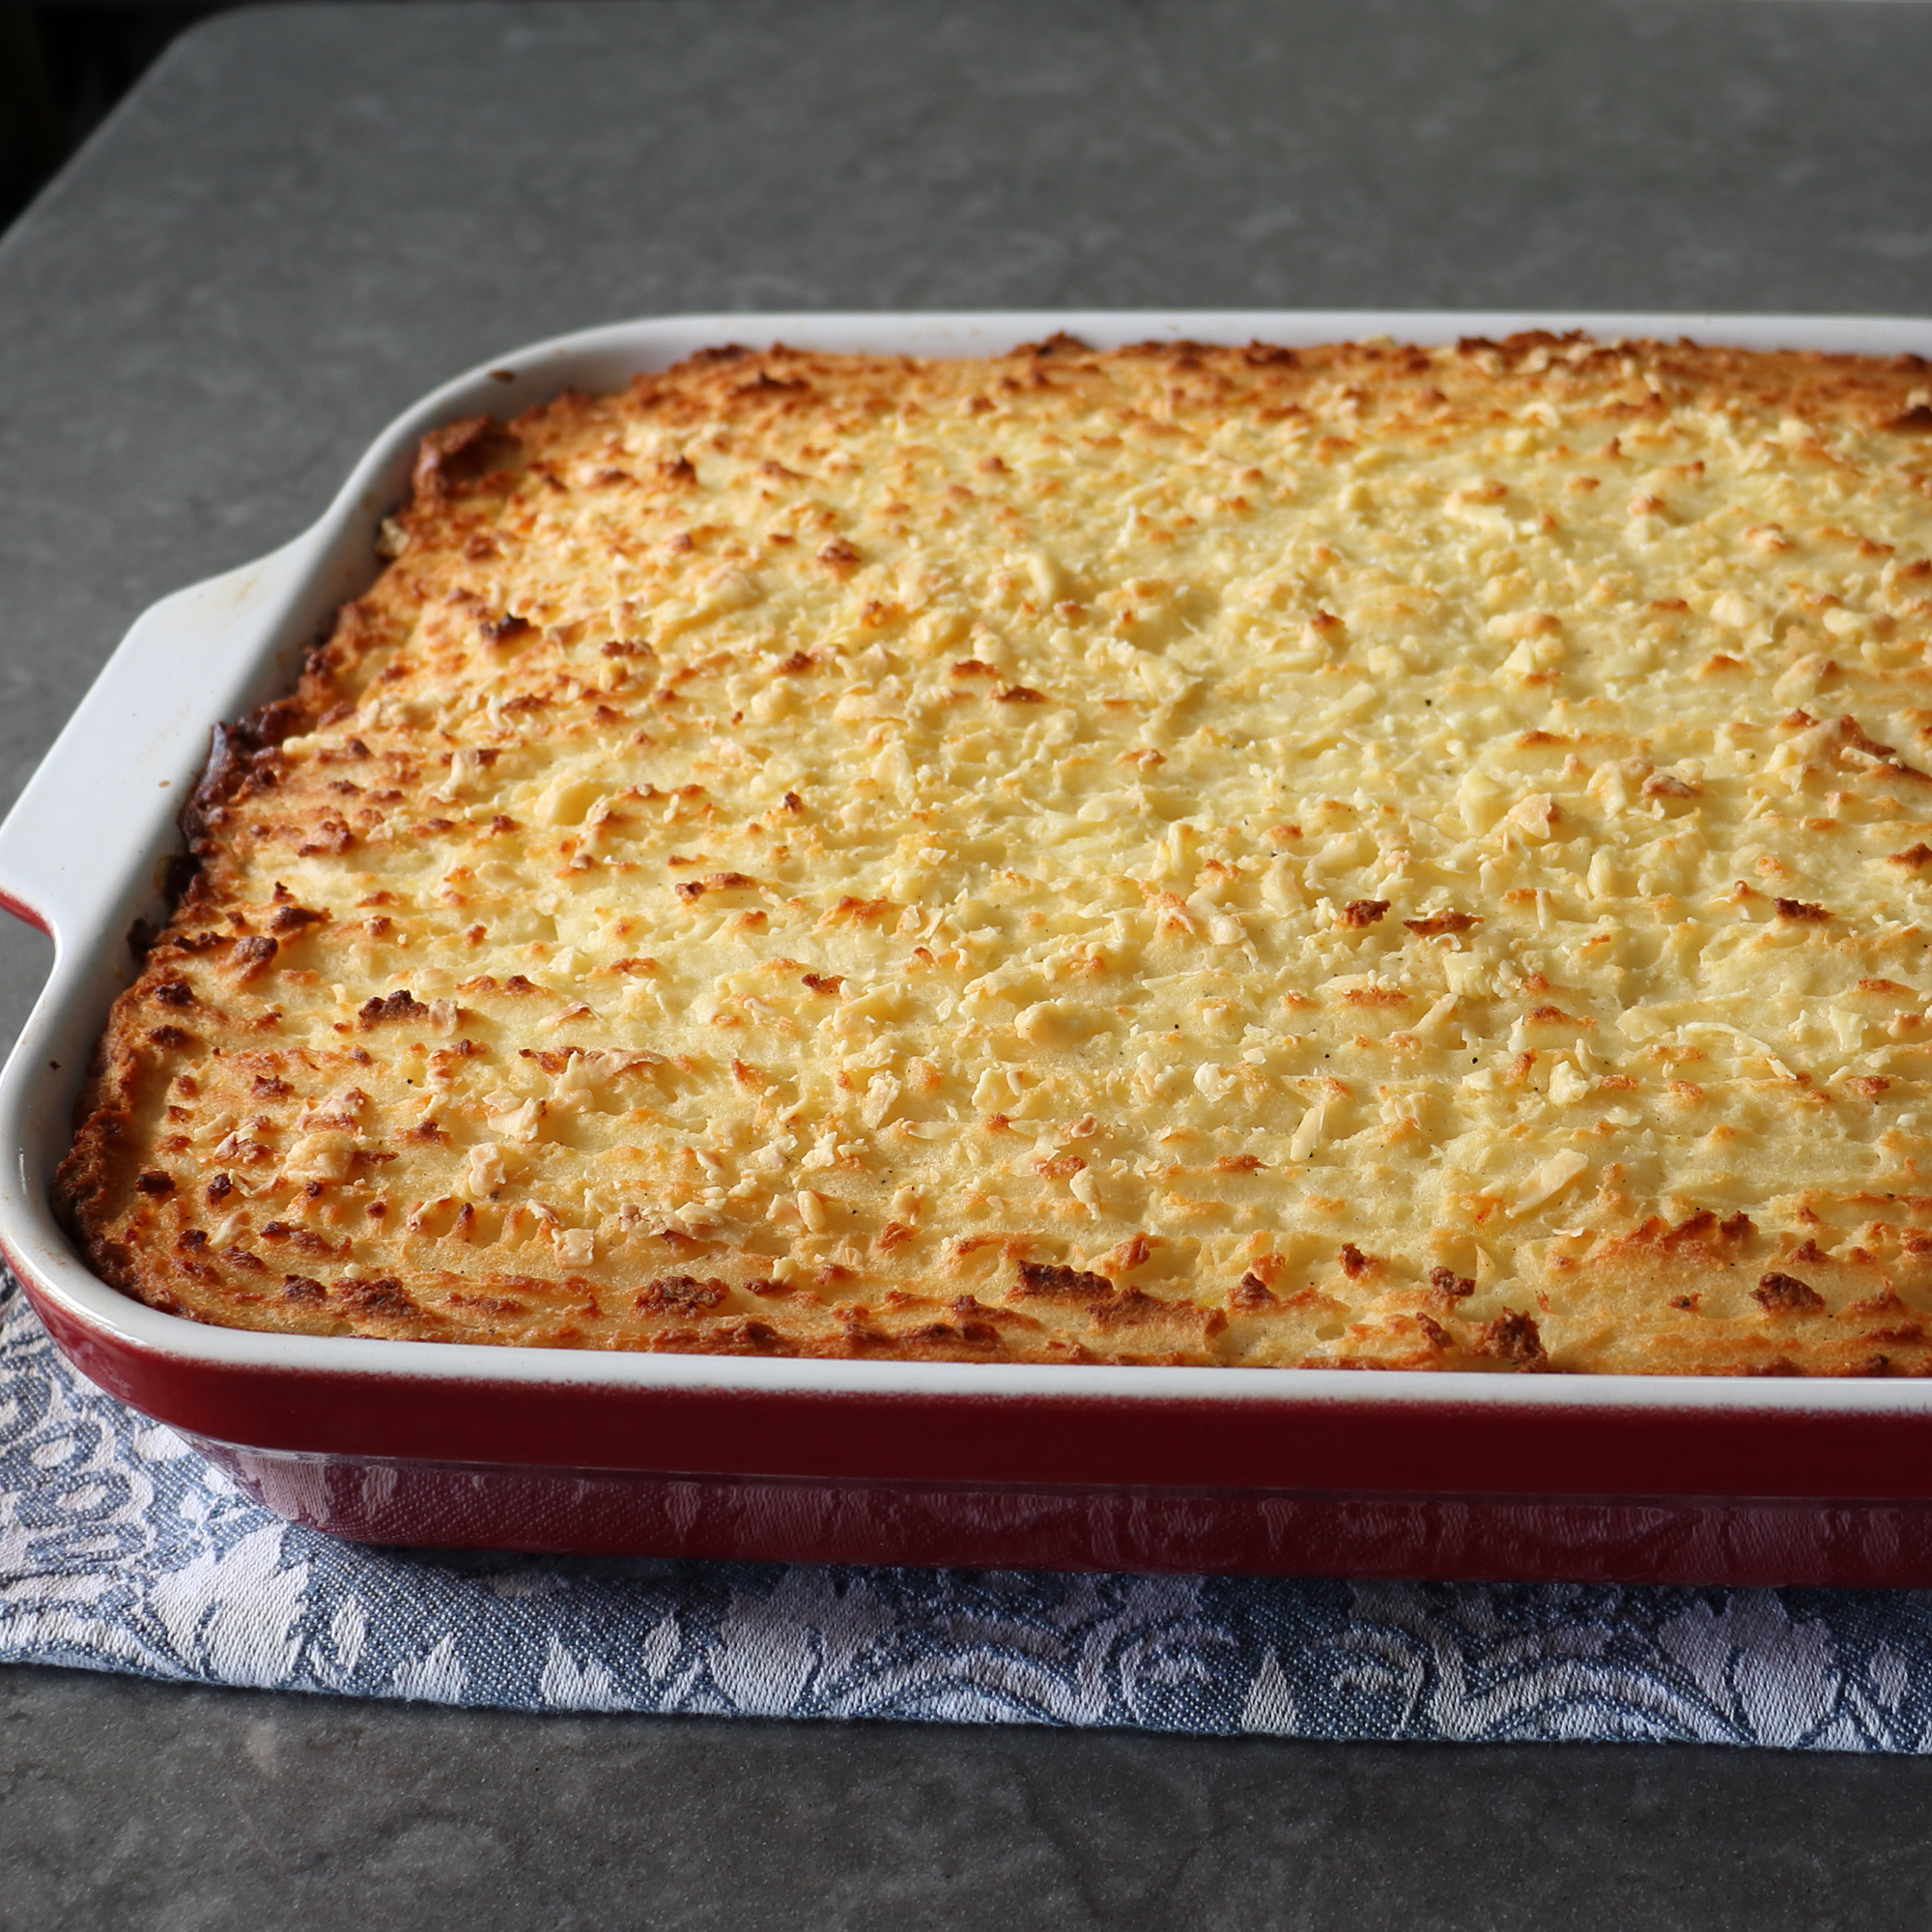 Corned Beef and Cabbage Shepherd's Pie in a red dish